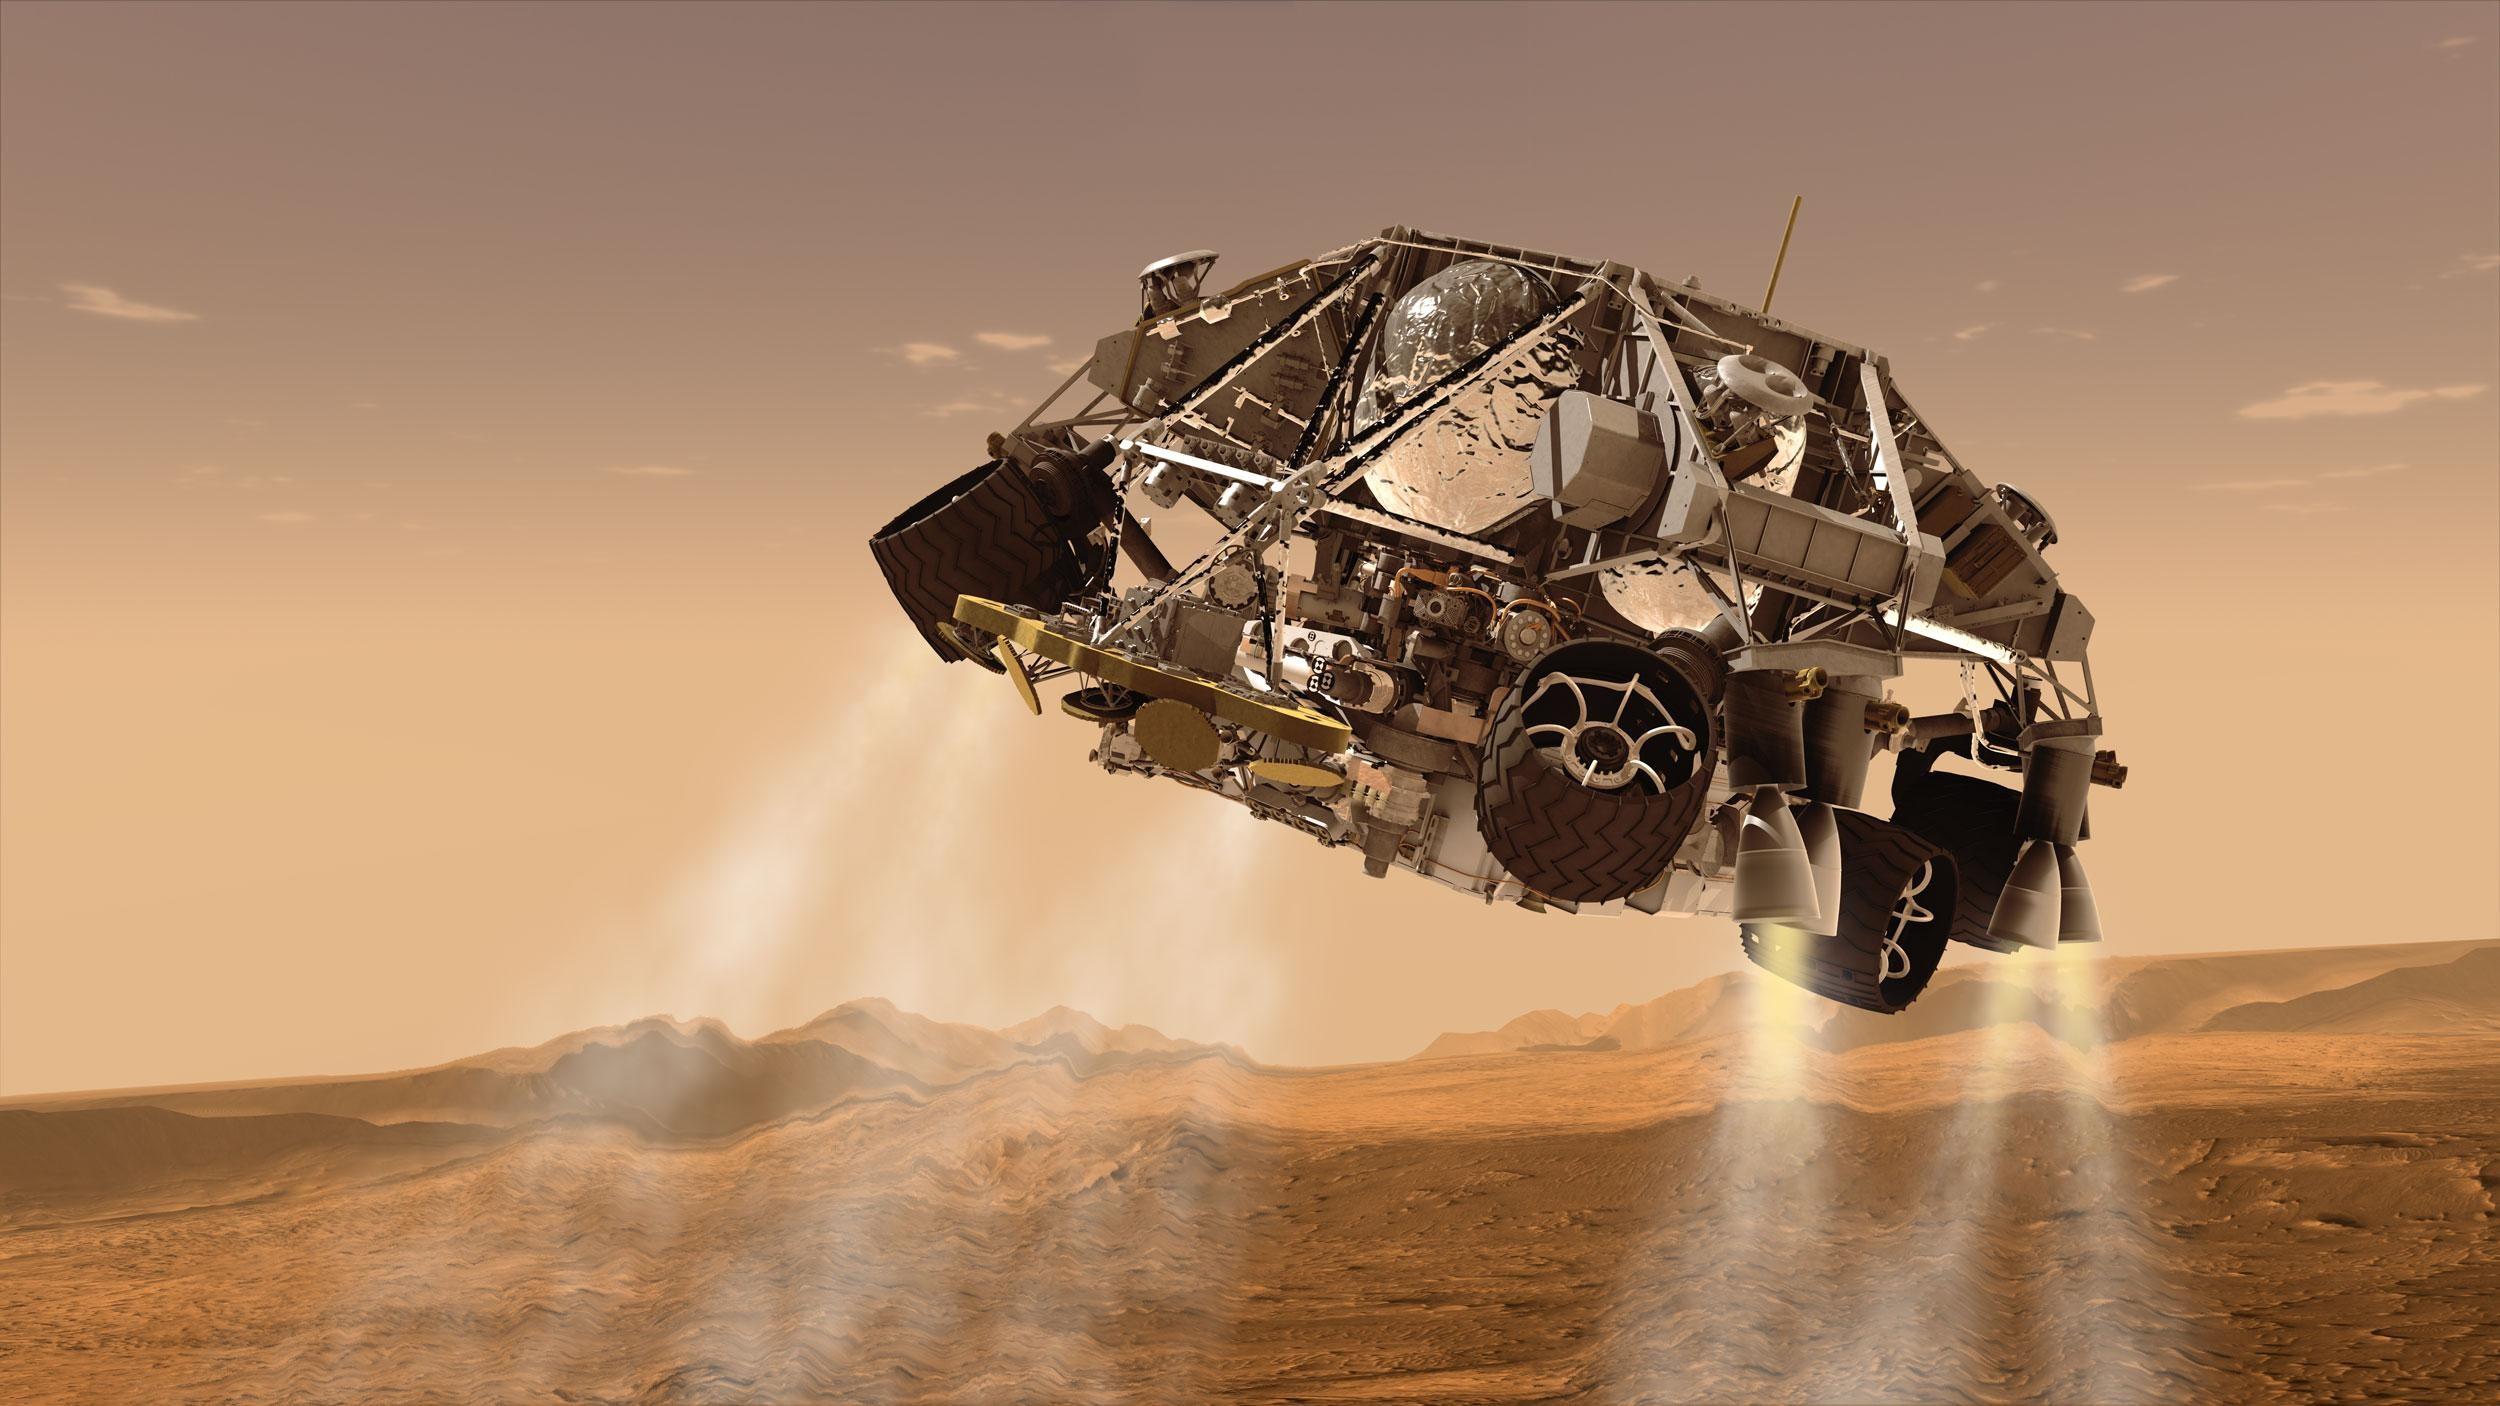 Res: 2500x1406, Curiosity landing: Powered descent phase. Click to view full image